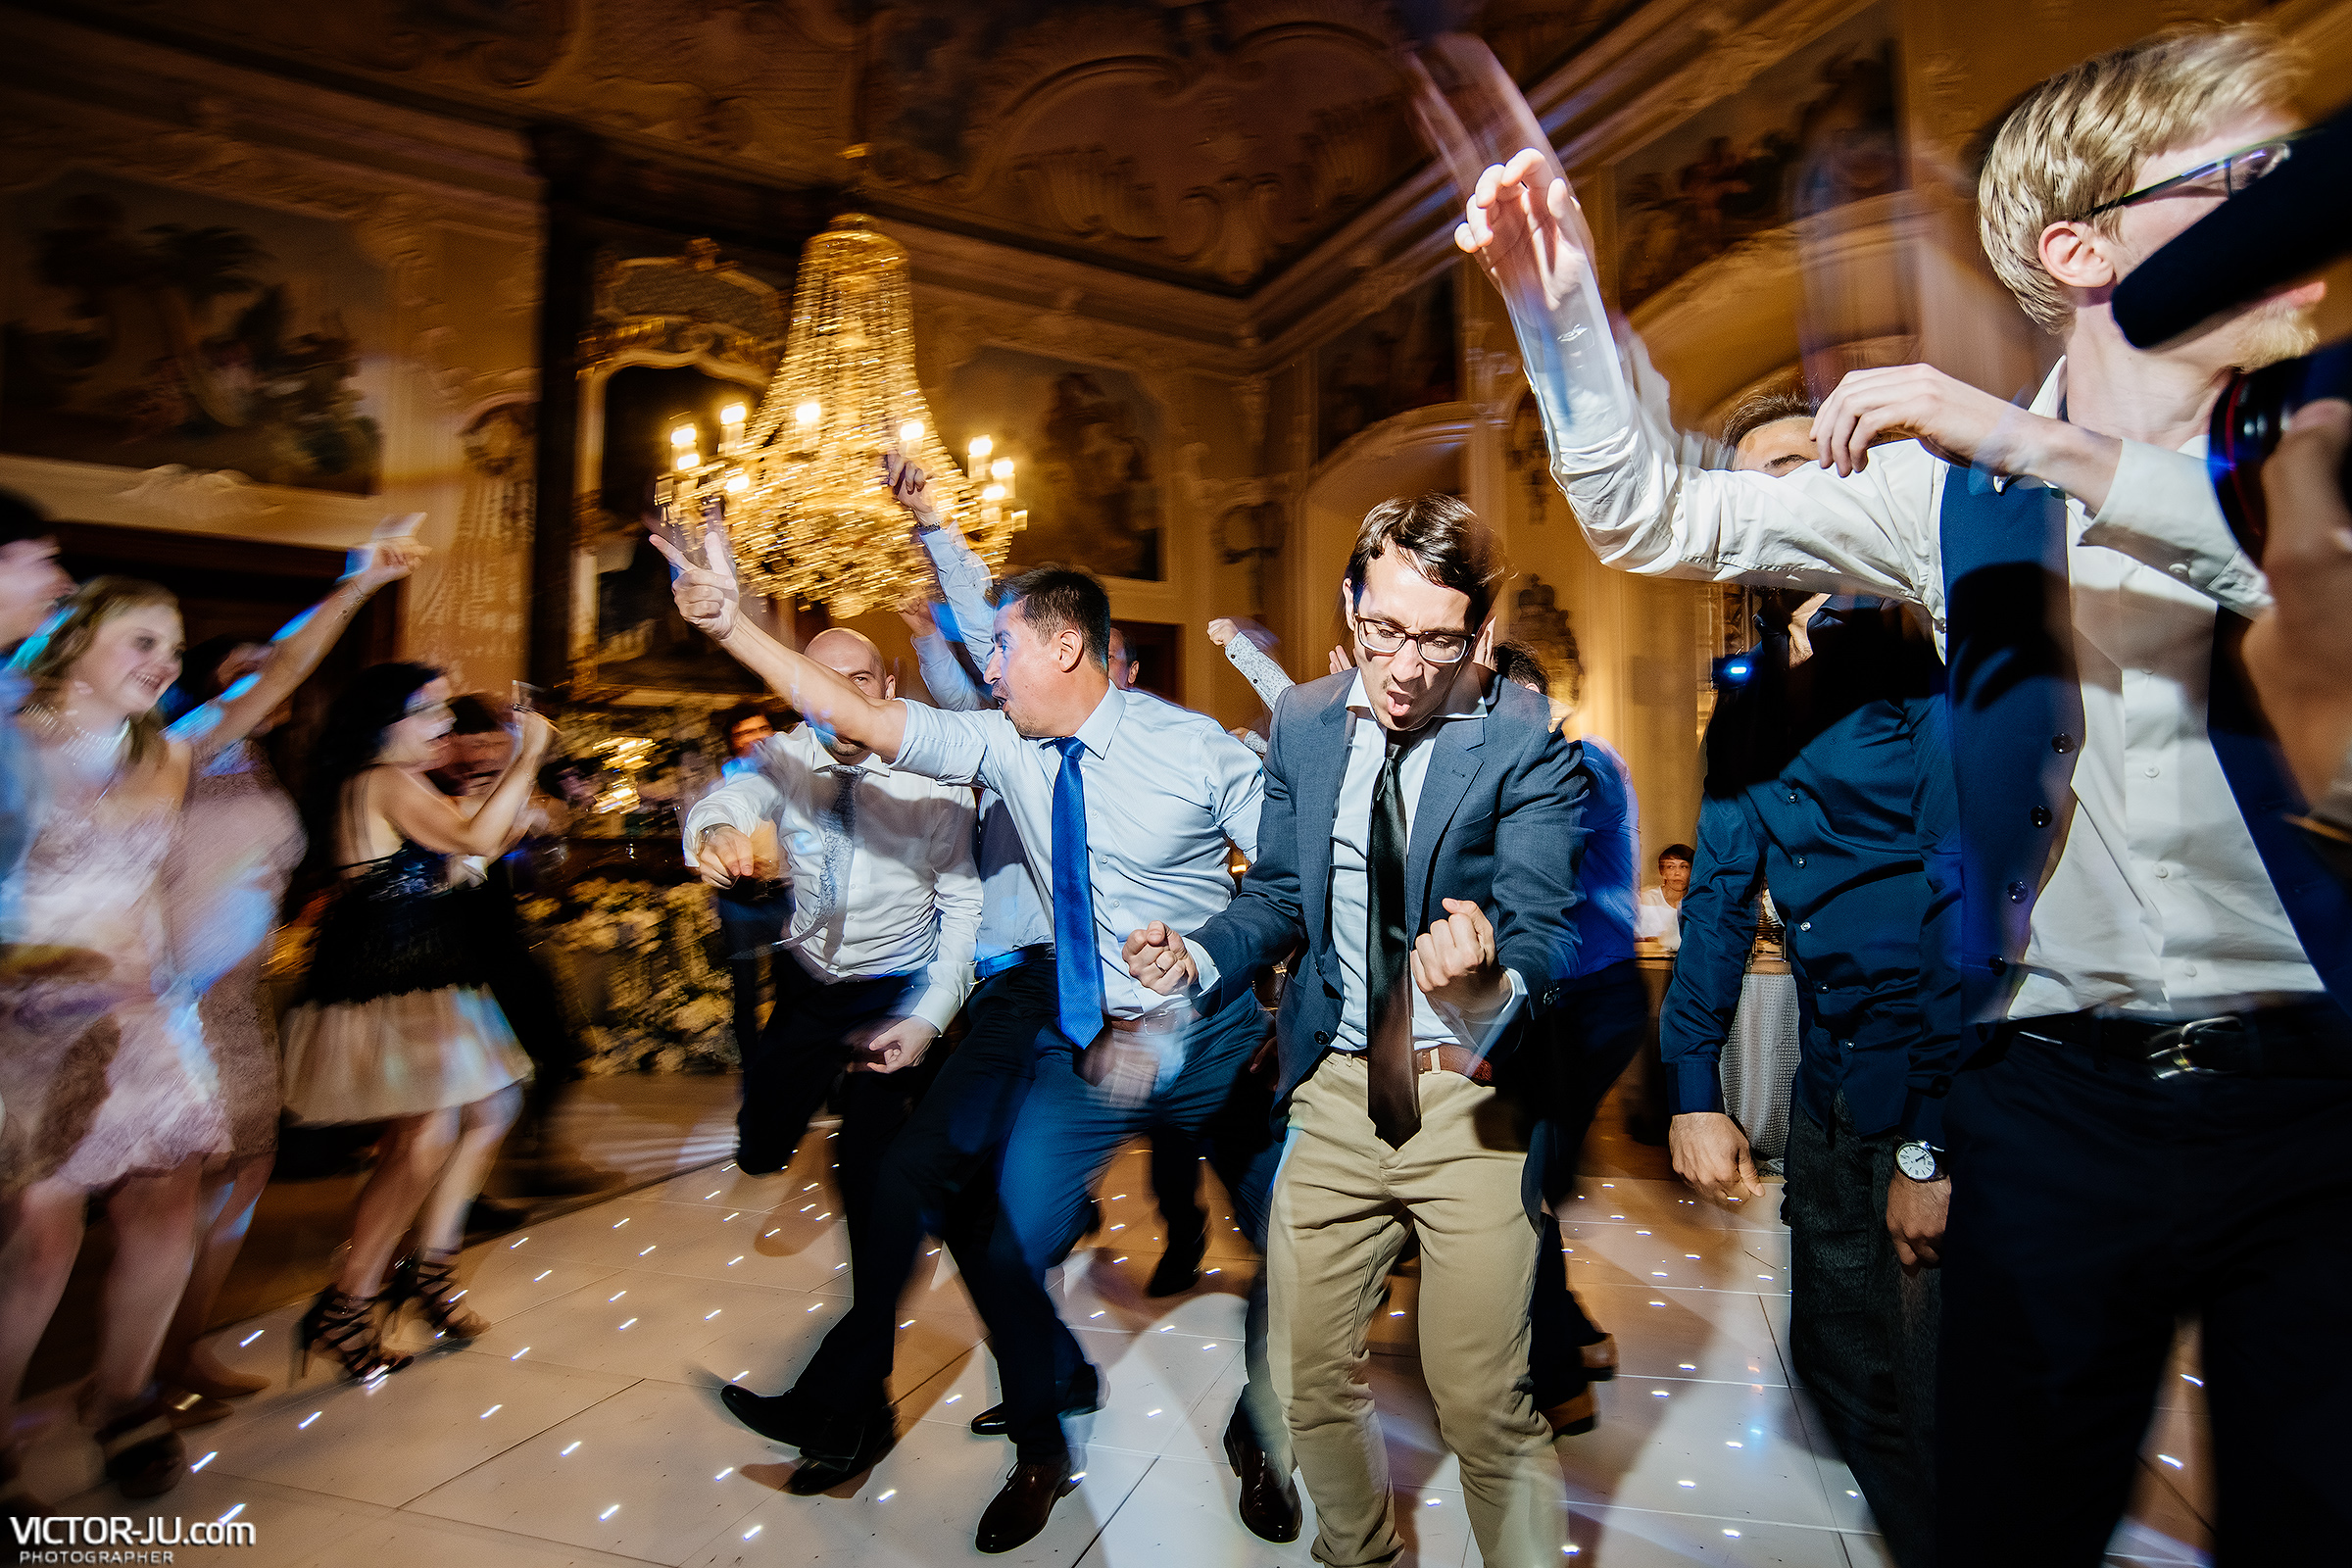 Dancing at the wedding in the Czech Republic